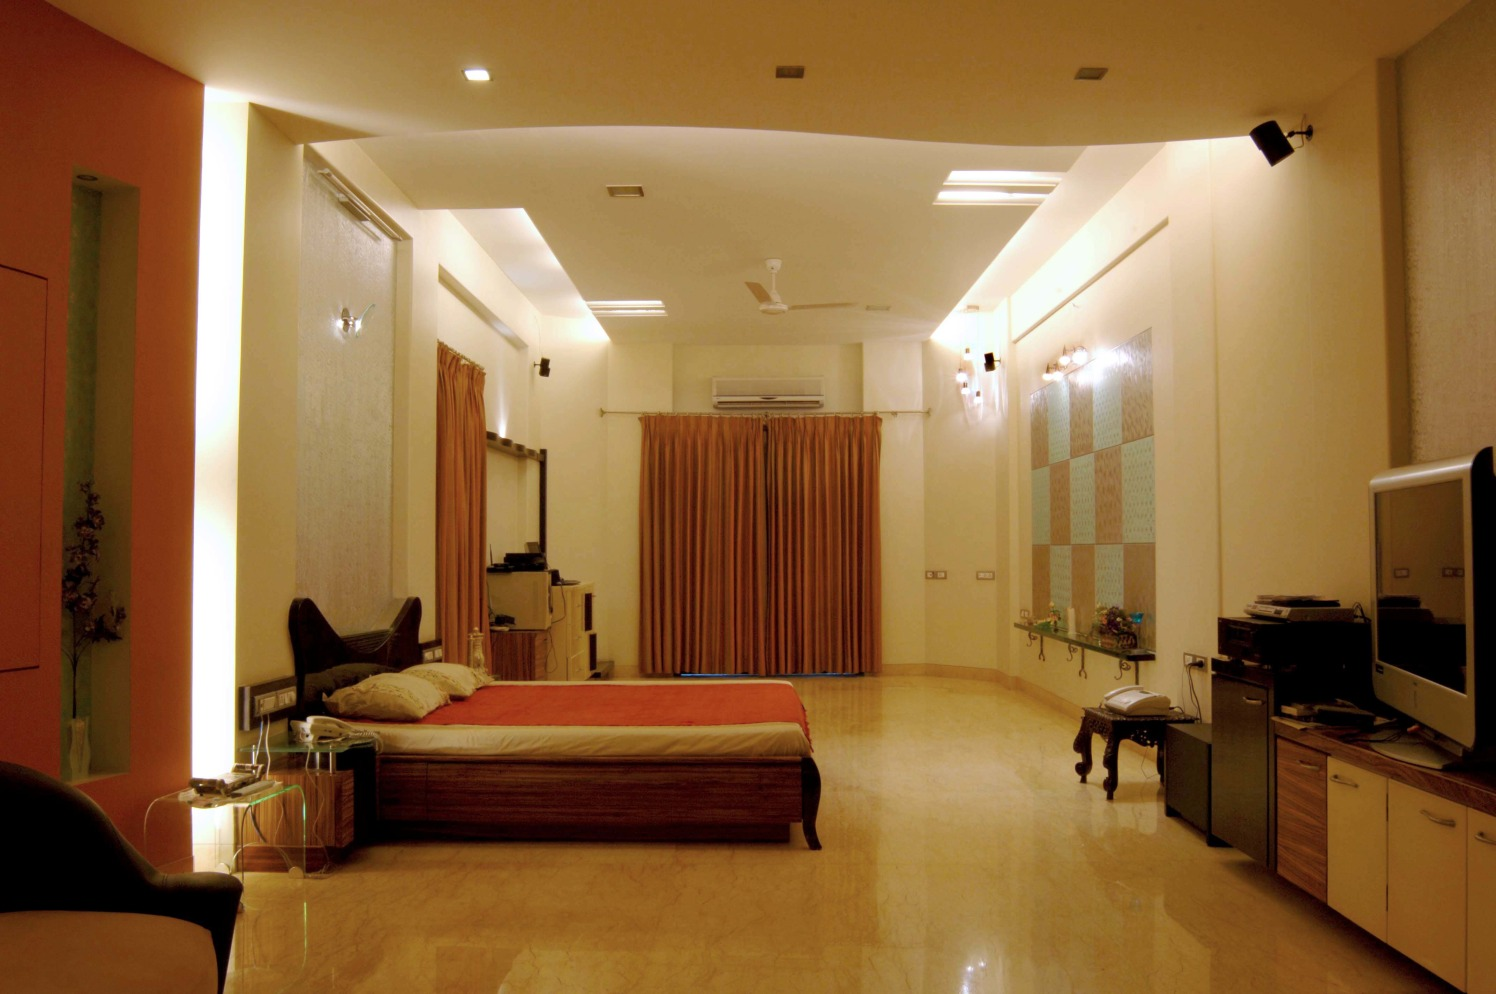 Beige bedroom with king sized bed and false ceiling by S.K.Interiors Bedroom Contemporary | Interior Design Photos & Ideas